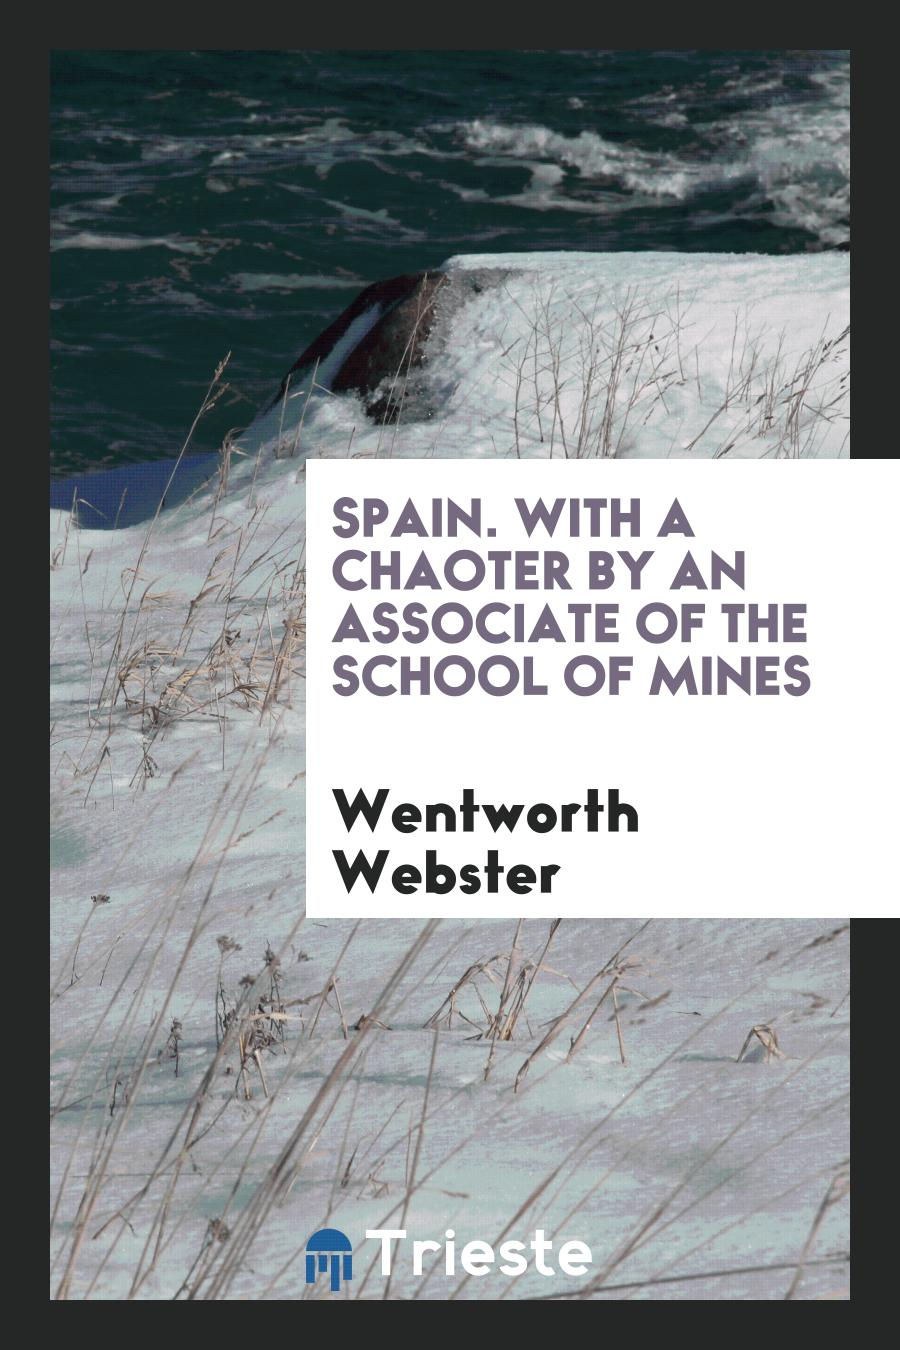 Spain. With a Chaoter by an Associate of the School of Mines